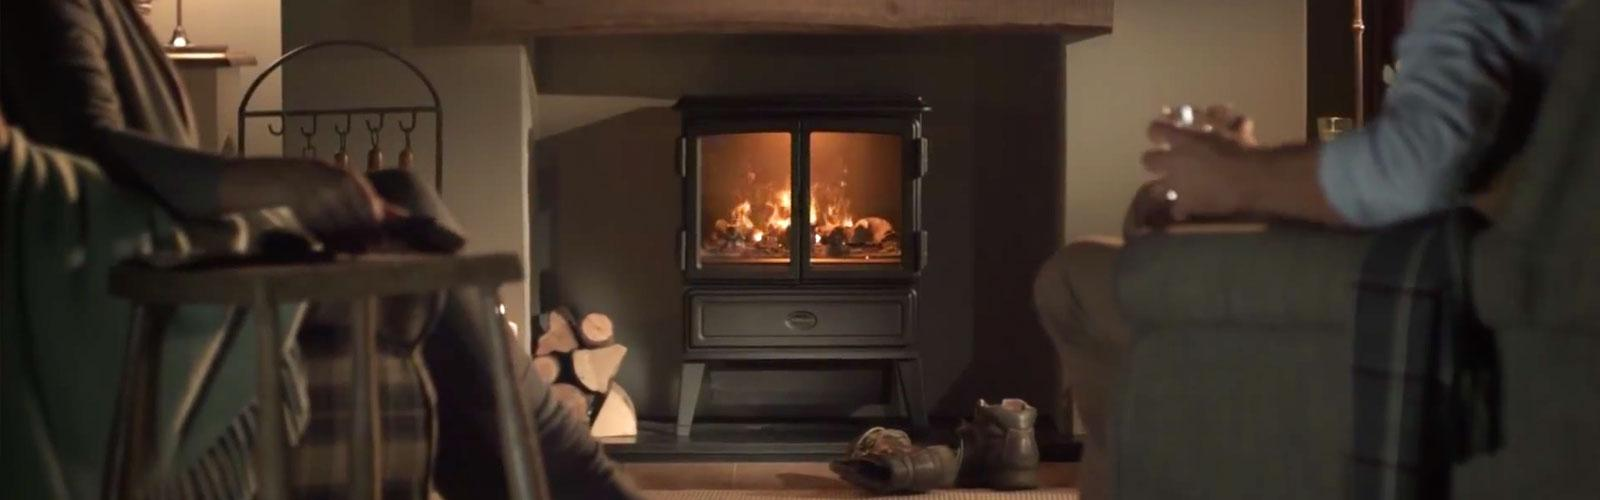 Electric Heating Fires And Fireplaces From Dimplex